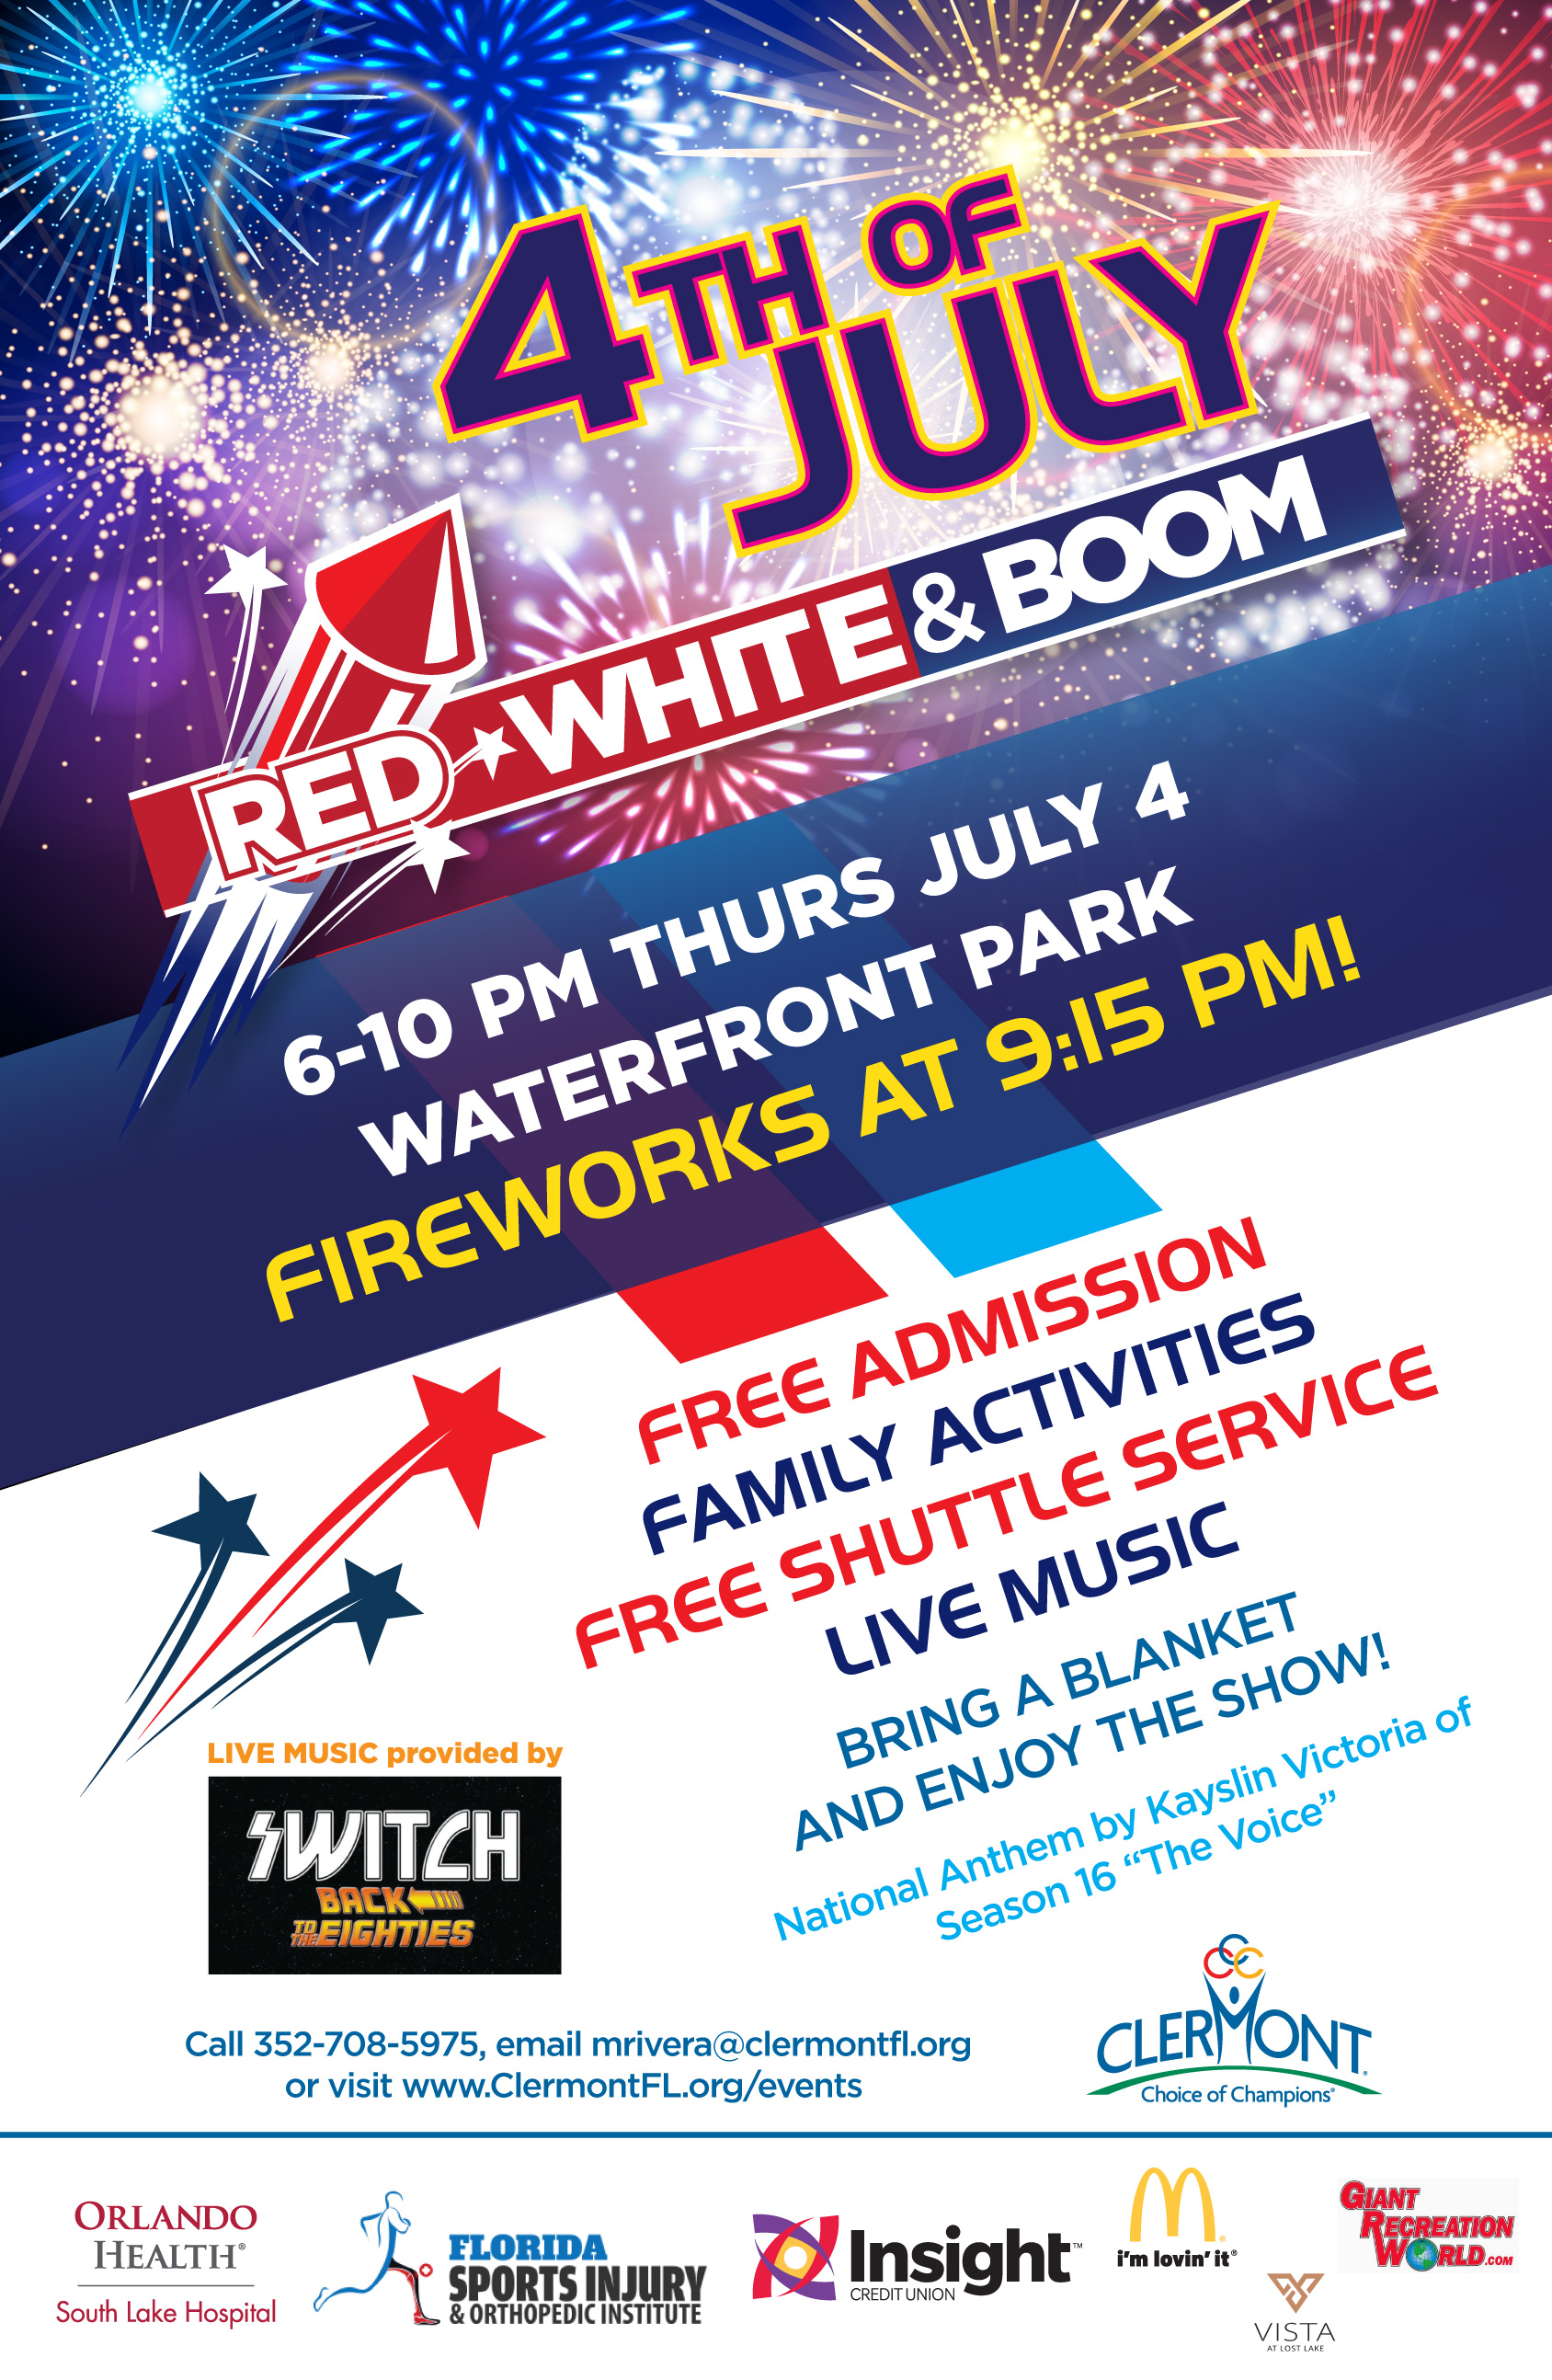 4th of July Red White & Boom poster. 6-11 pm thursday july 4. waterfront park fireworks at 9:15 pm. free admission family activities free shuttle service live music. bring a blanket and enjoy the show. national anthem by kayslin victoria of season 16